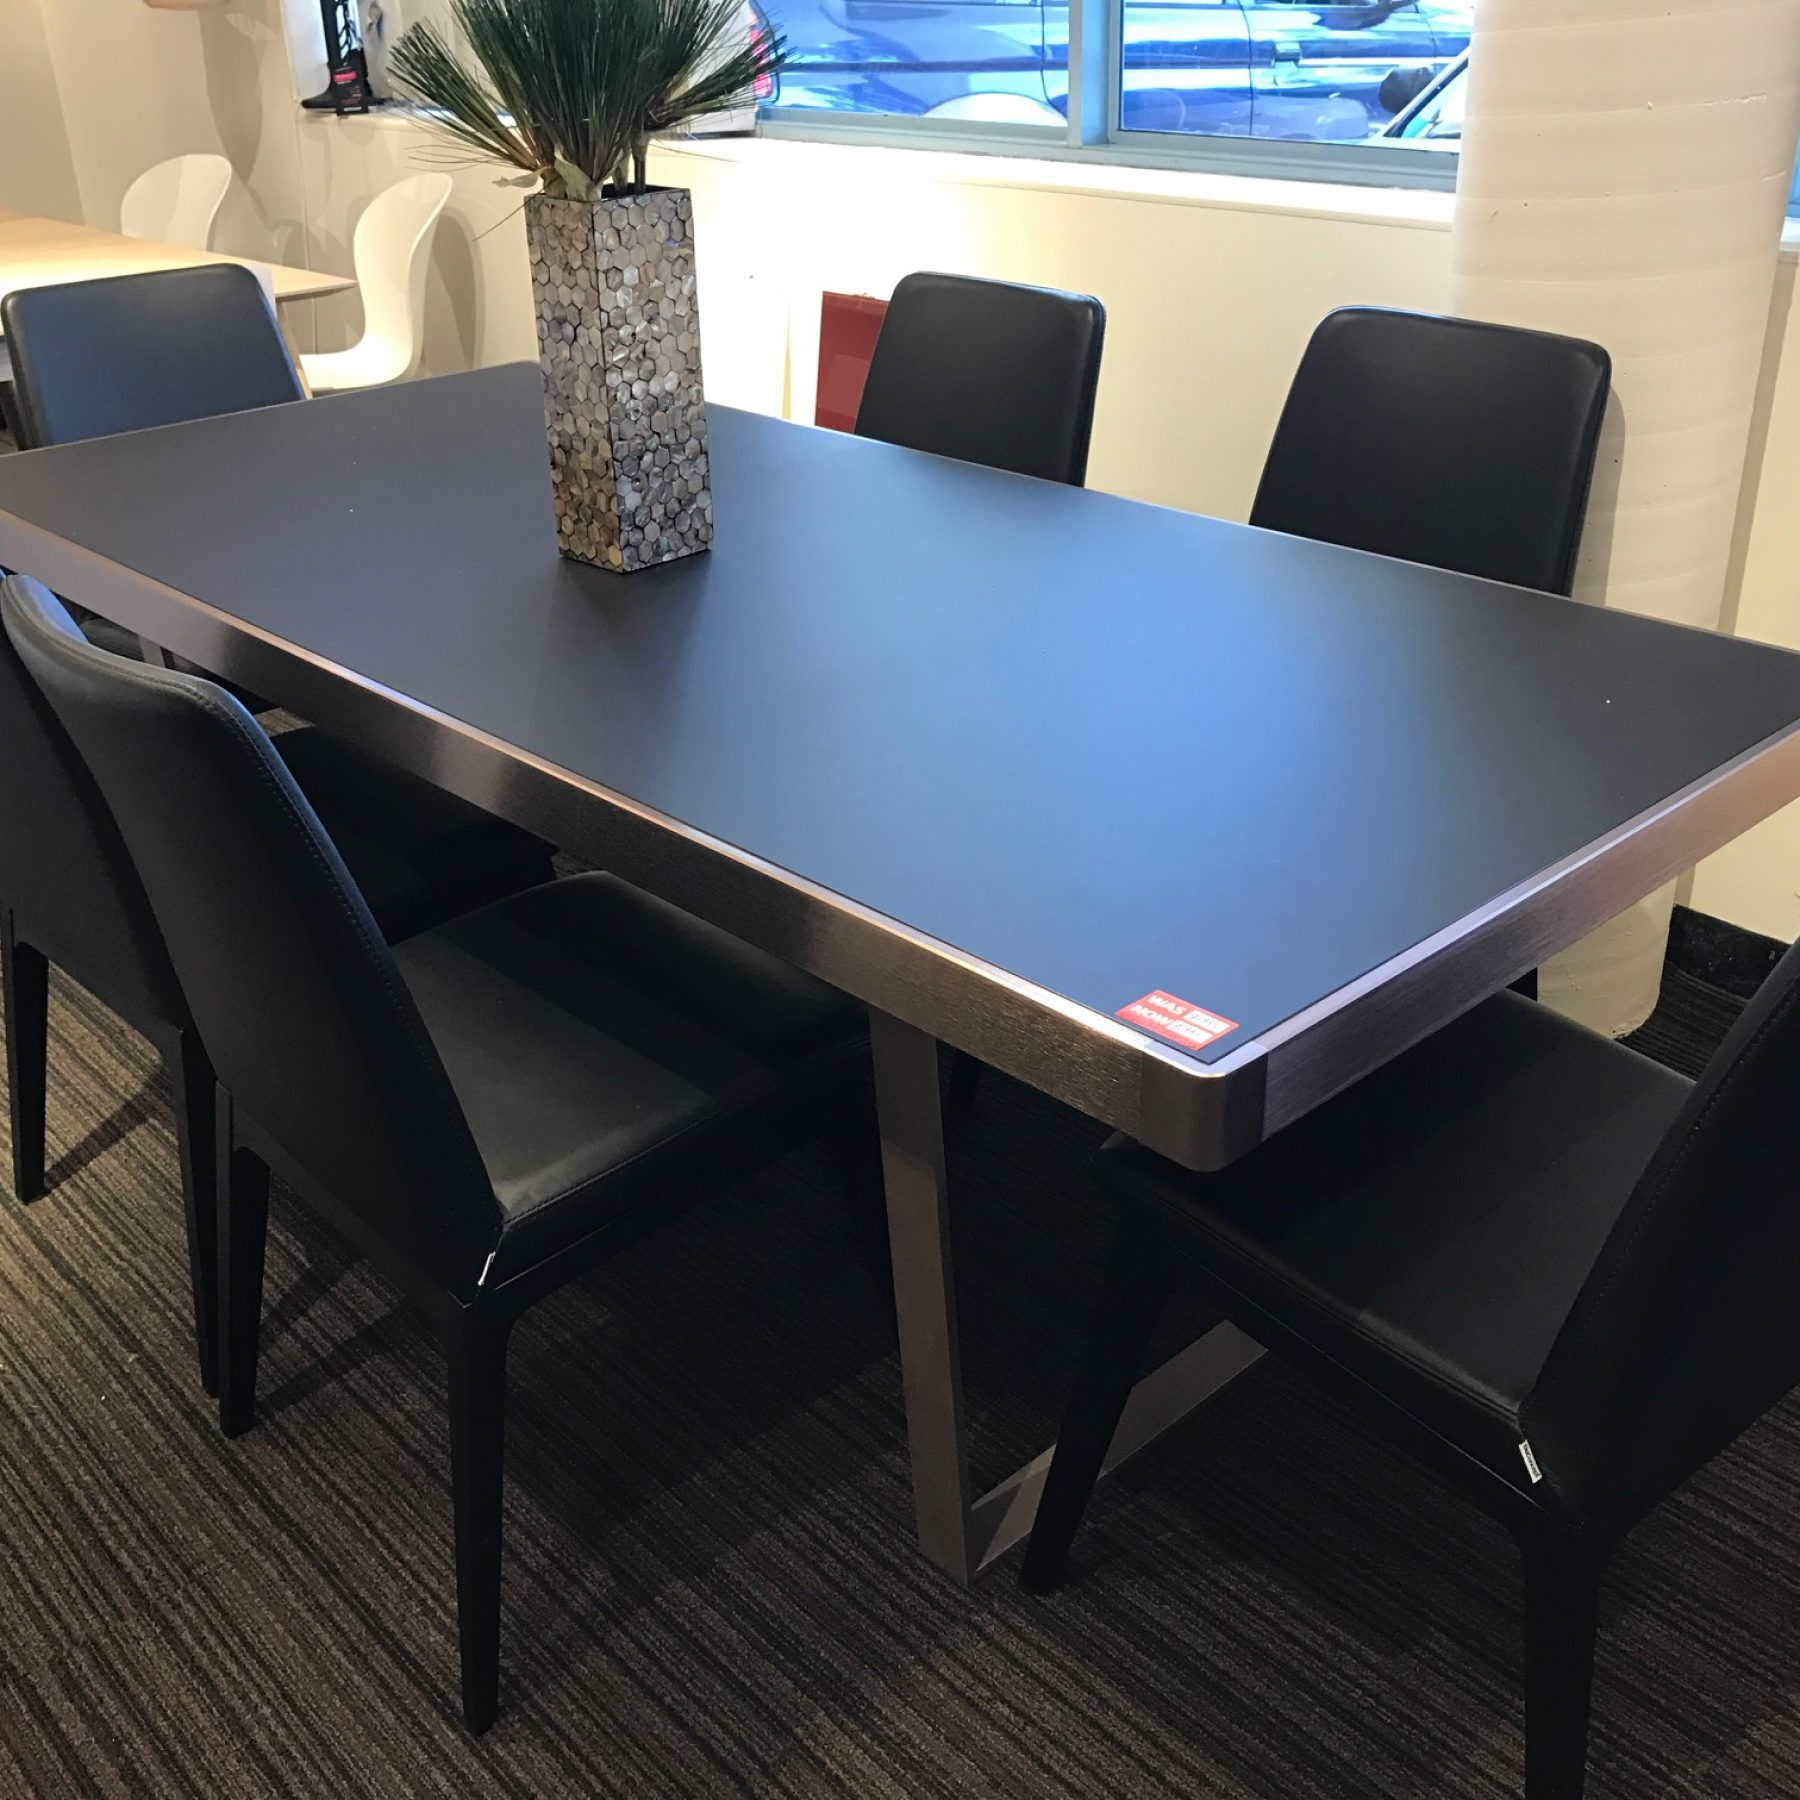 Dining Tables Clearance: Warehouse Clearance-Aster Dining Table